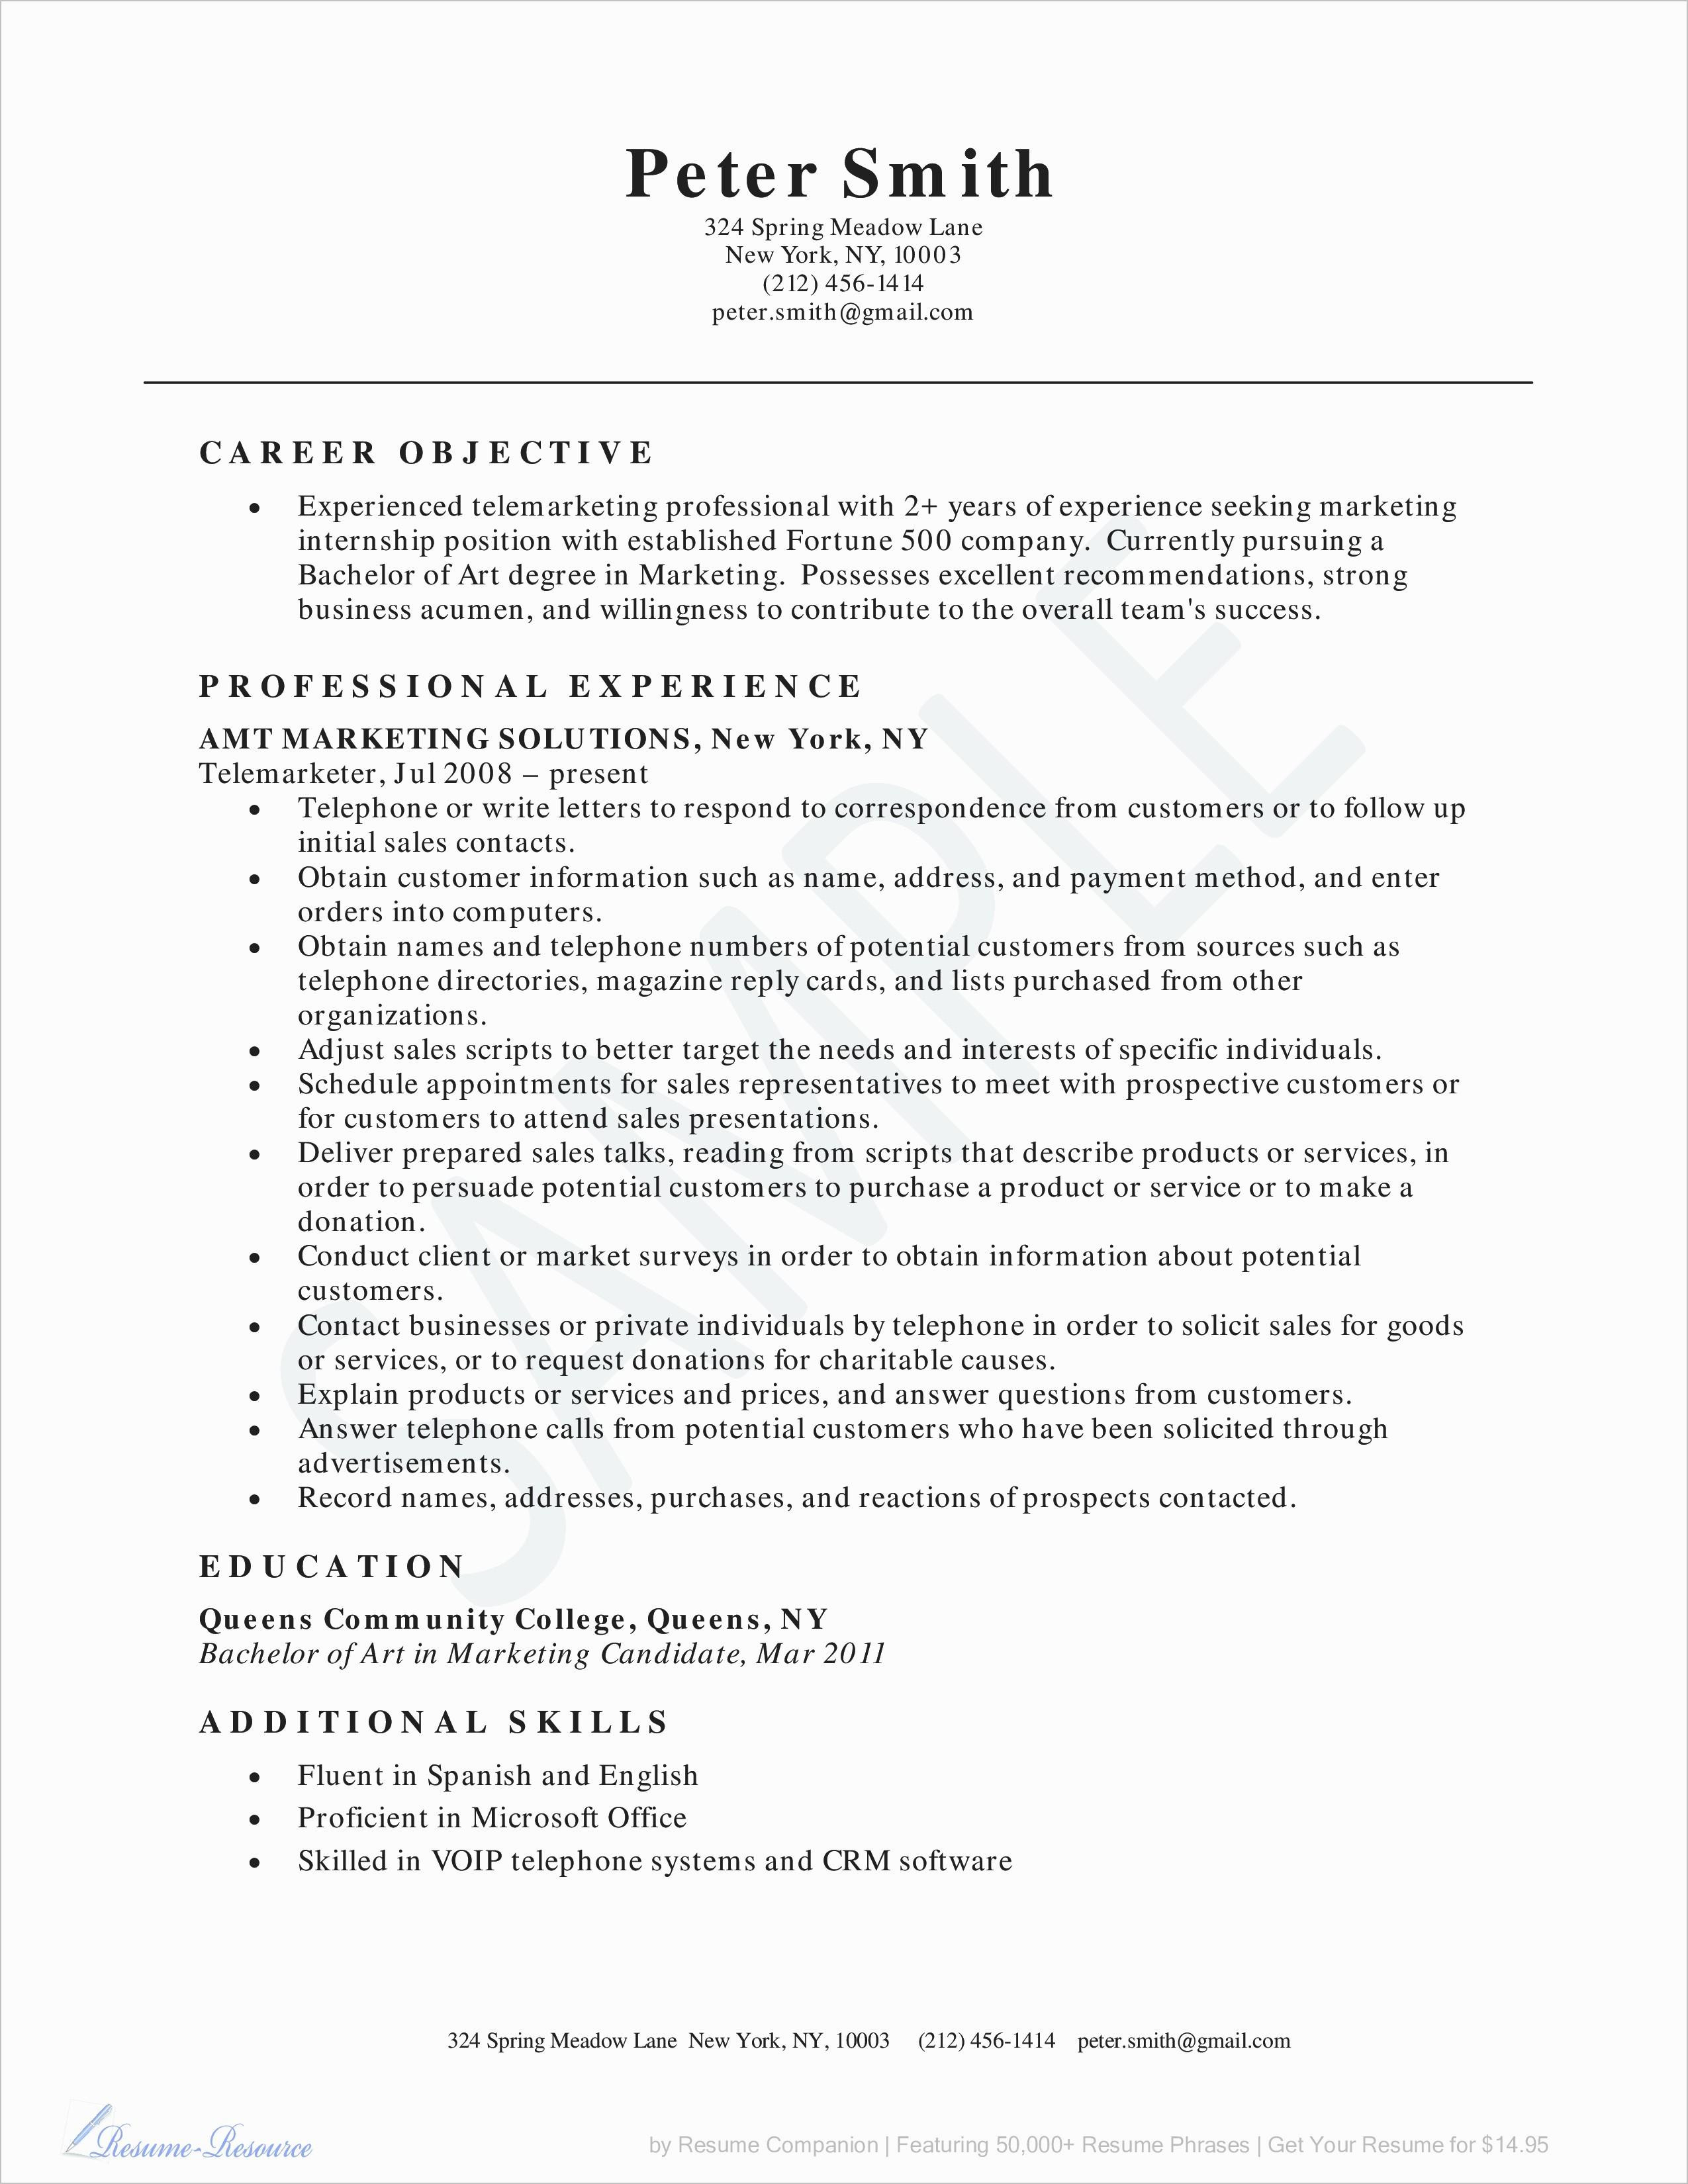 general motors careers resume example-General Motors Careers Resume Fresh Resume format Sales and Marketing Beautiful Awesome How Can I Do 10-d